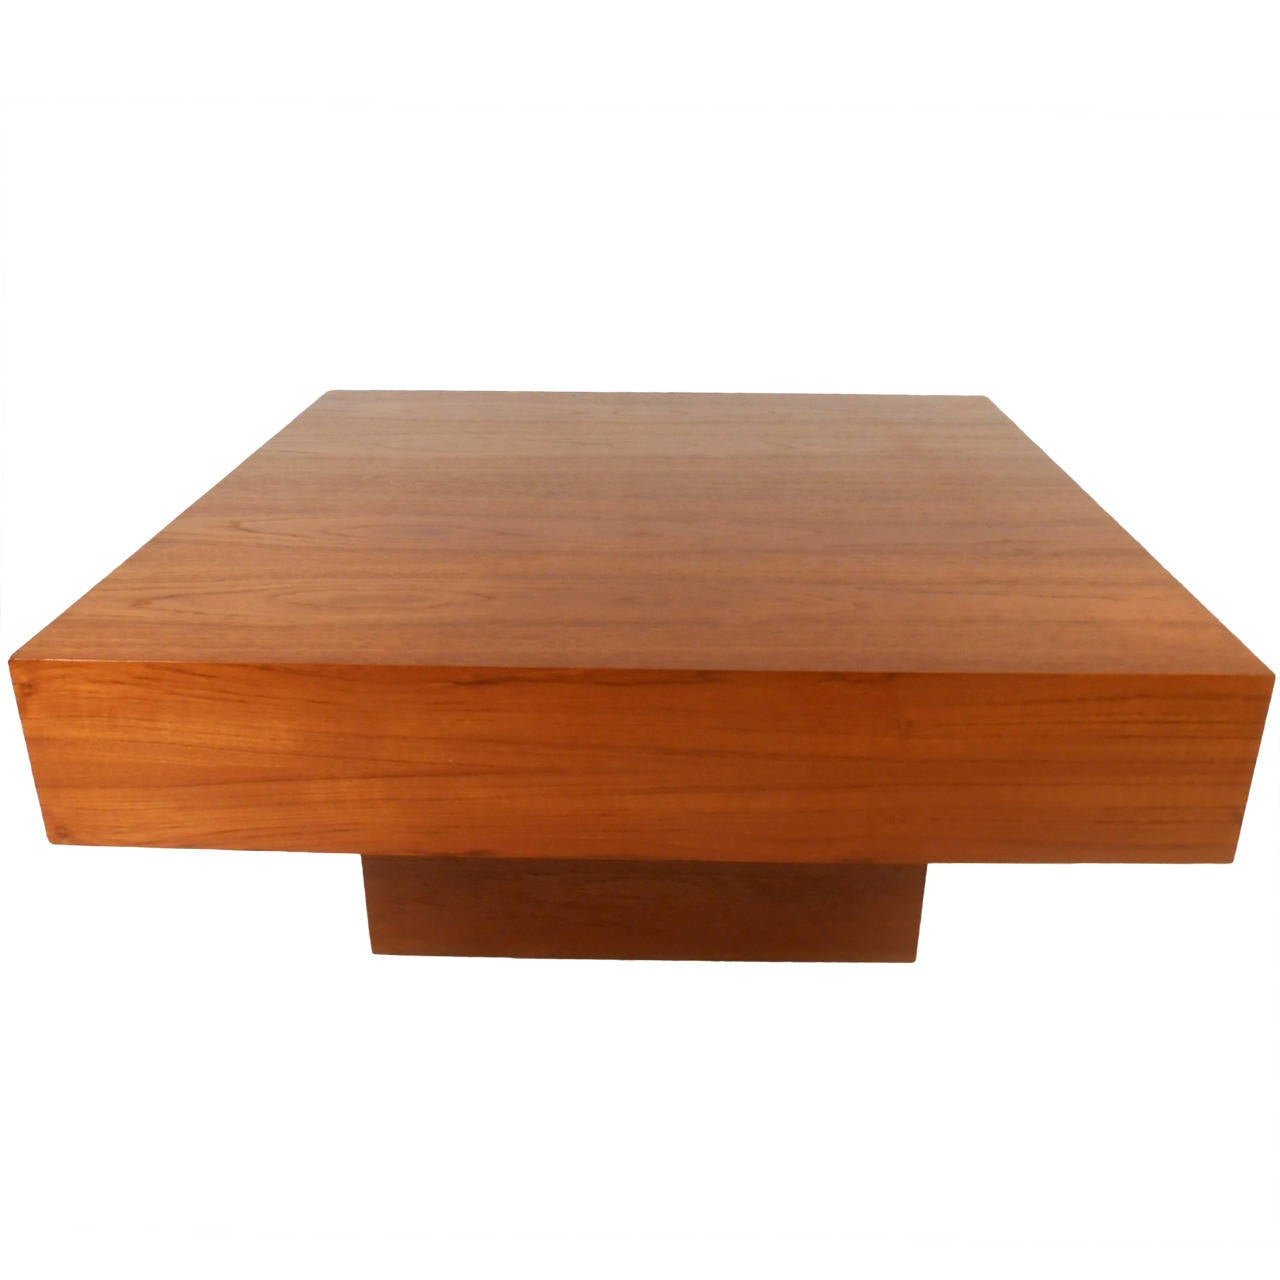 Mid century modern style teak center table for sale at 1stdibs for Center coffee table furniture